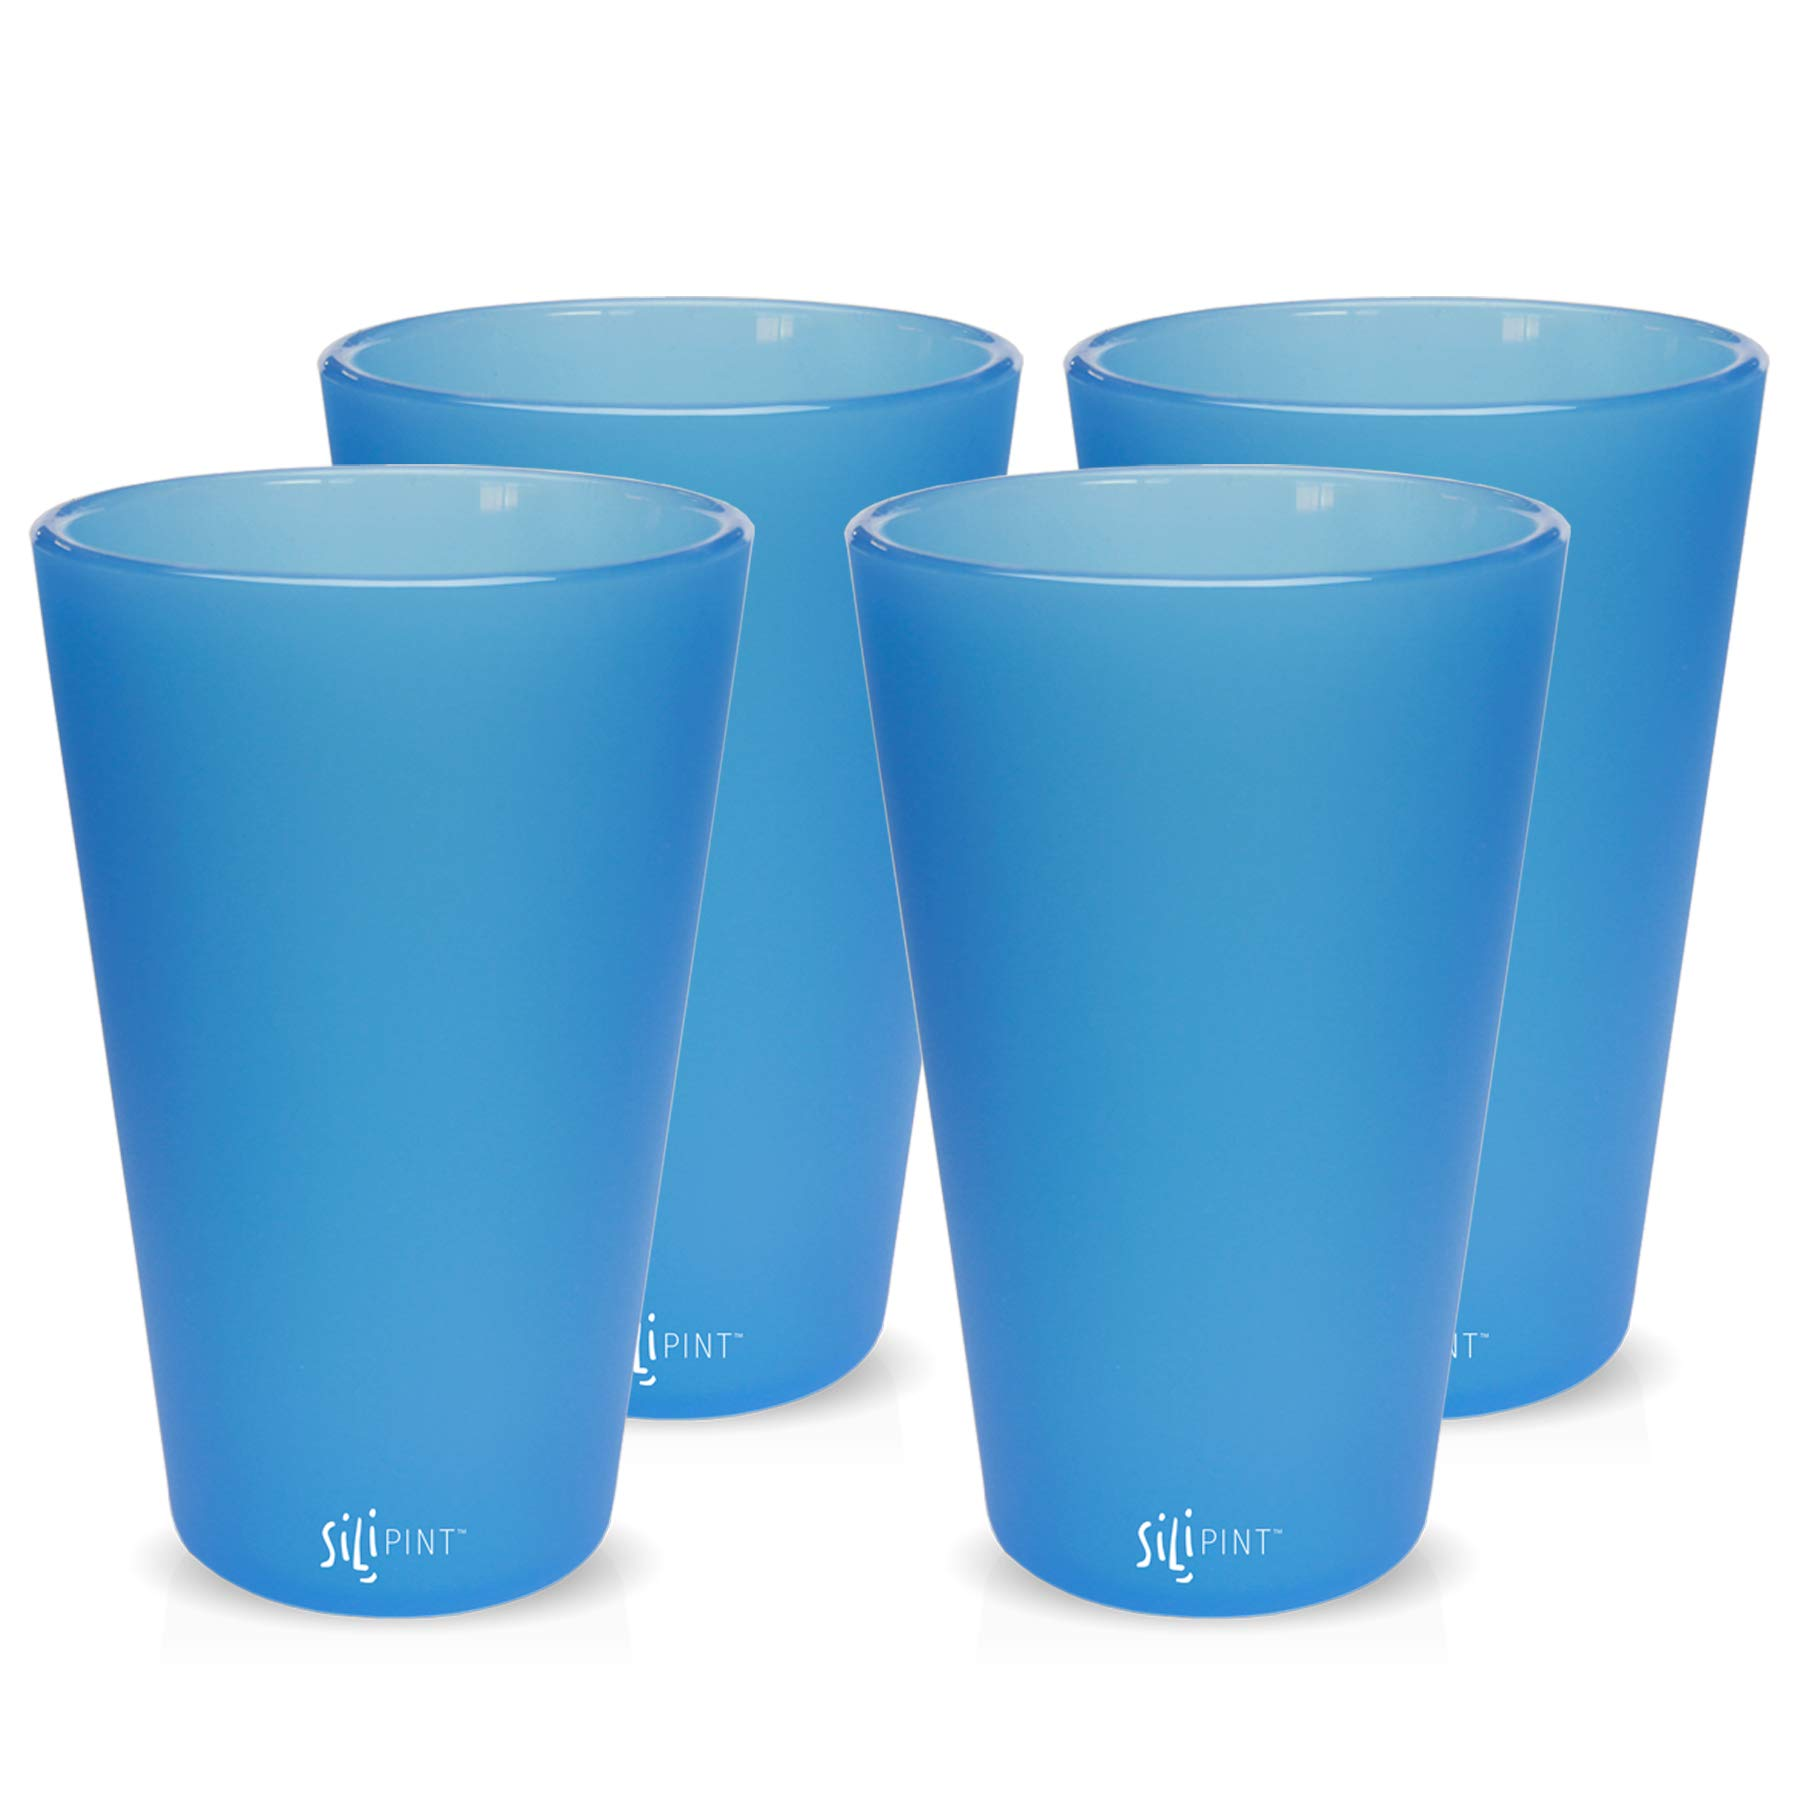 Silipint Silicone Pint Glass Set, Patented, BPA-Free, Shatter-proof, Unbreakable Silicone Cup Drinkware (4-Pack, Bend Blue) by Silipint